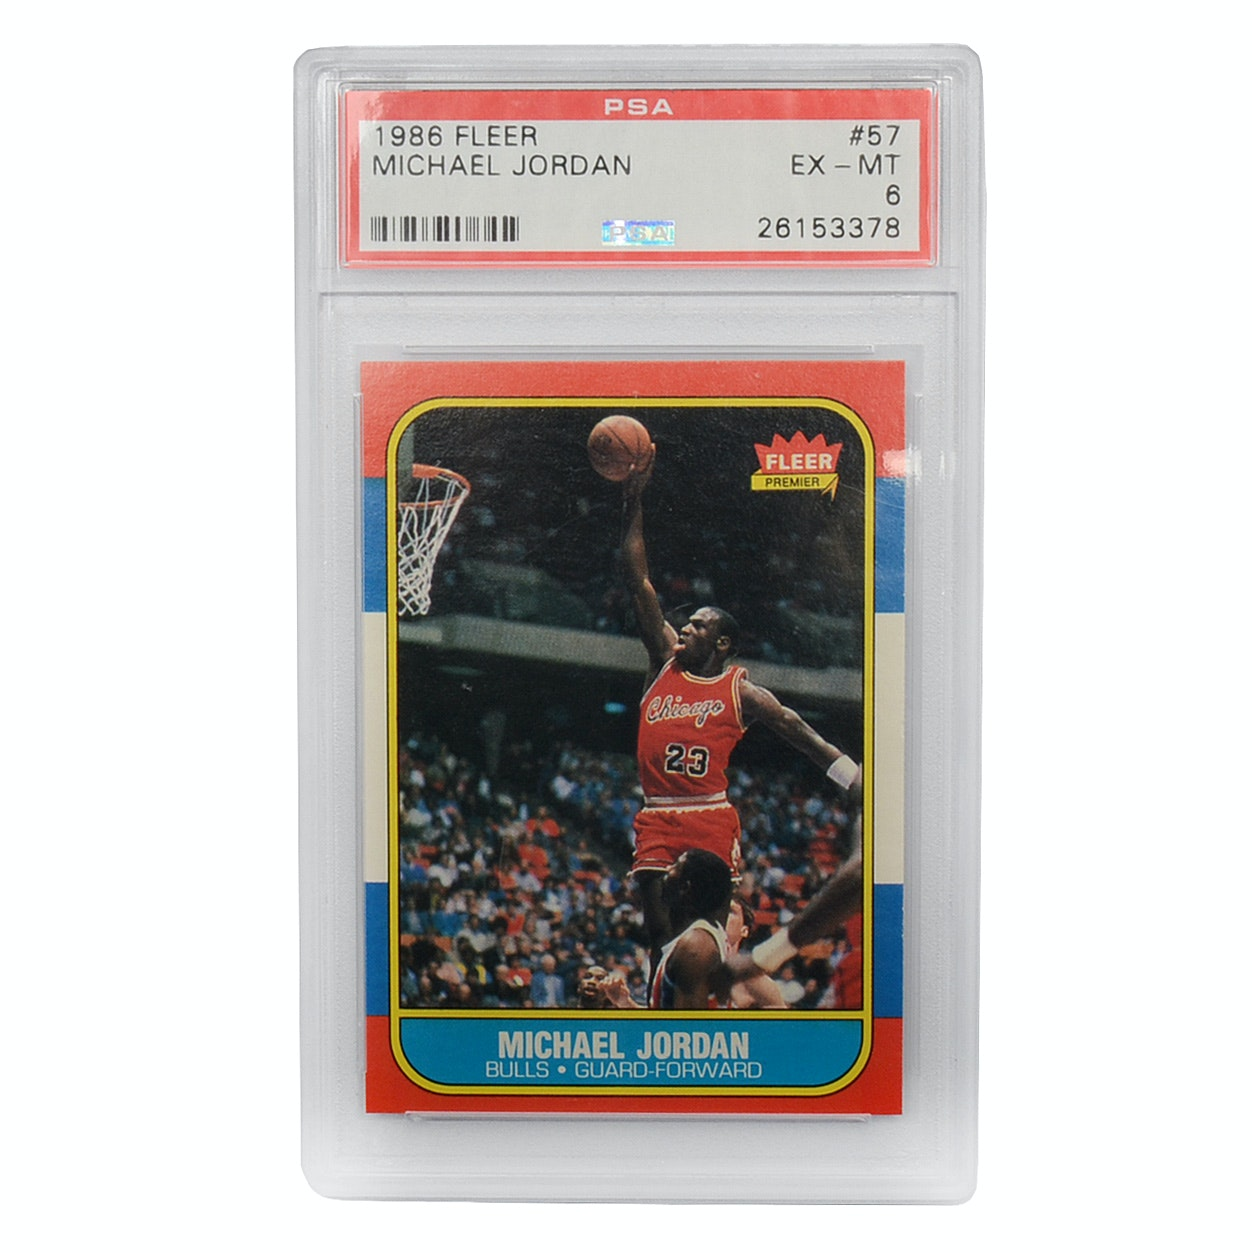 1986 Fleer Michael Jordan Graded Rookie Card